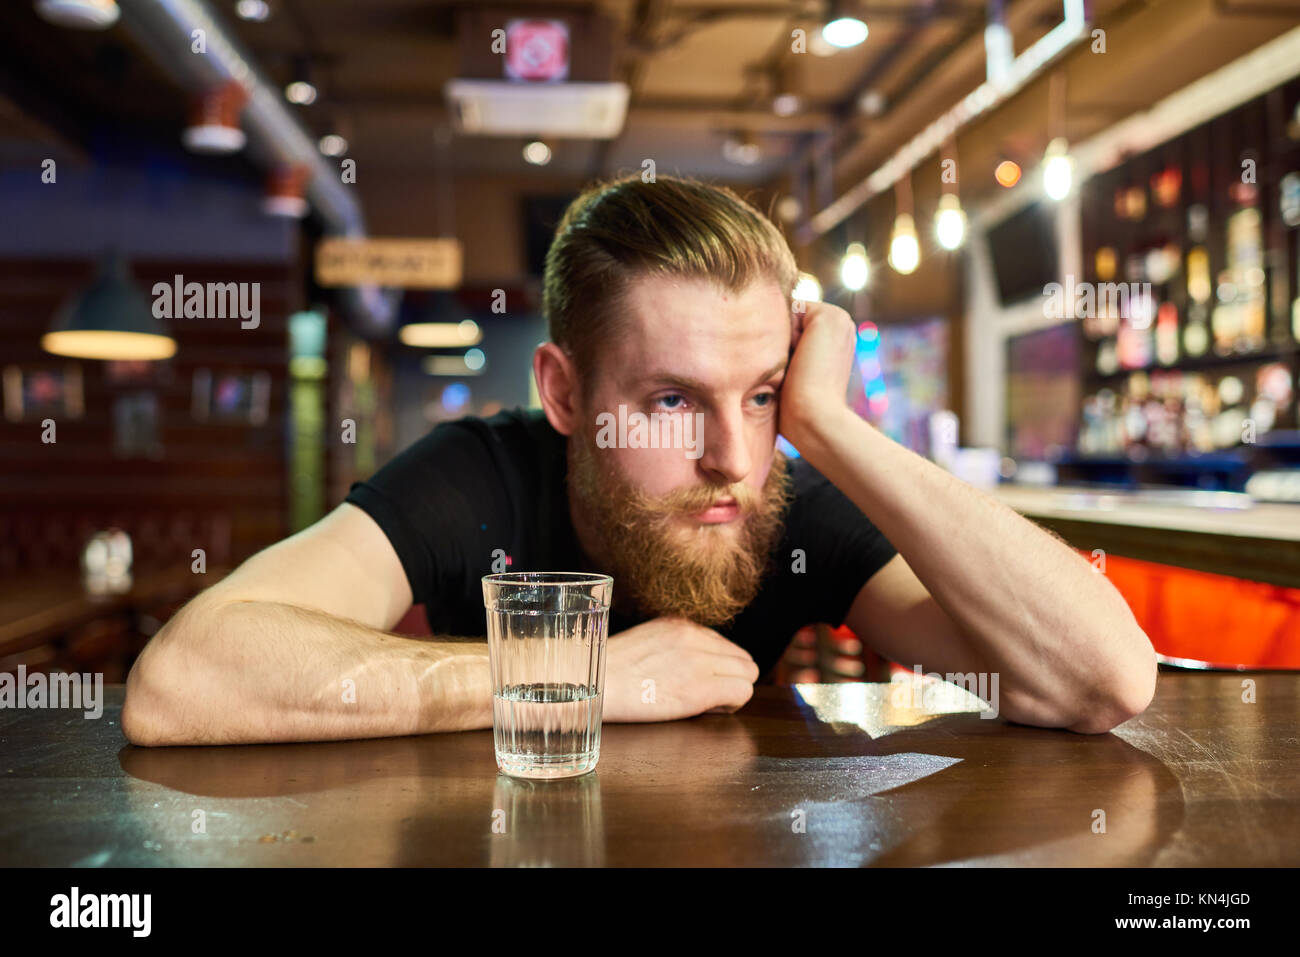 Sad Bearded Man Getting Drunk in Bar - Stock Image